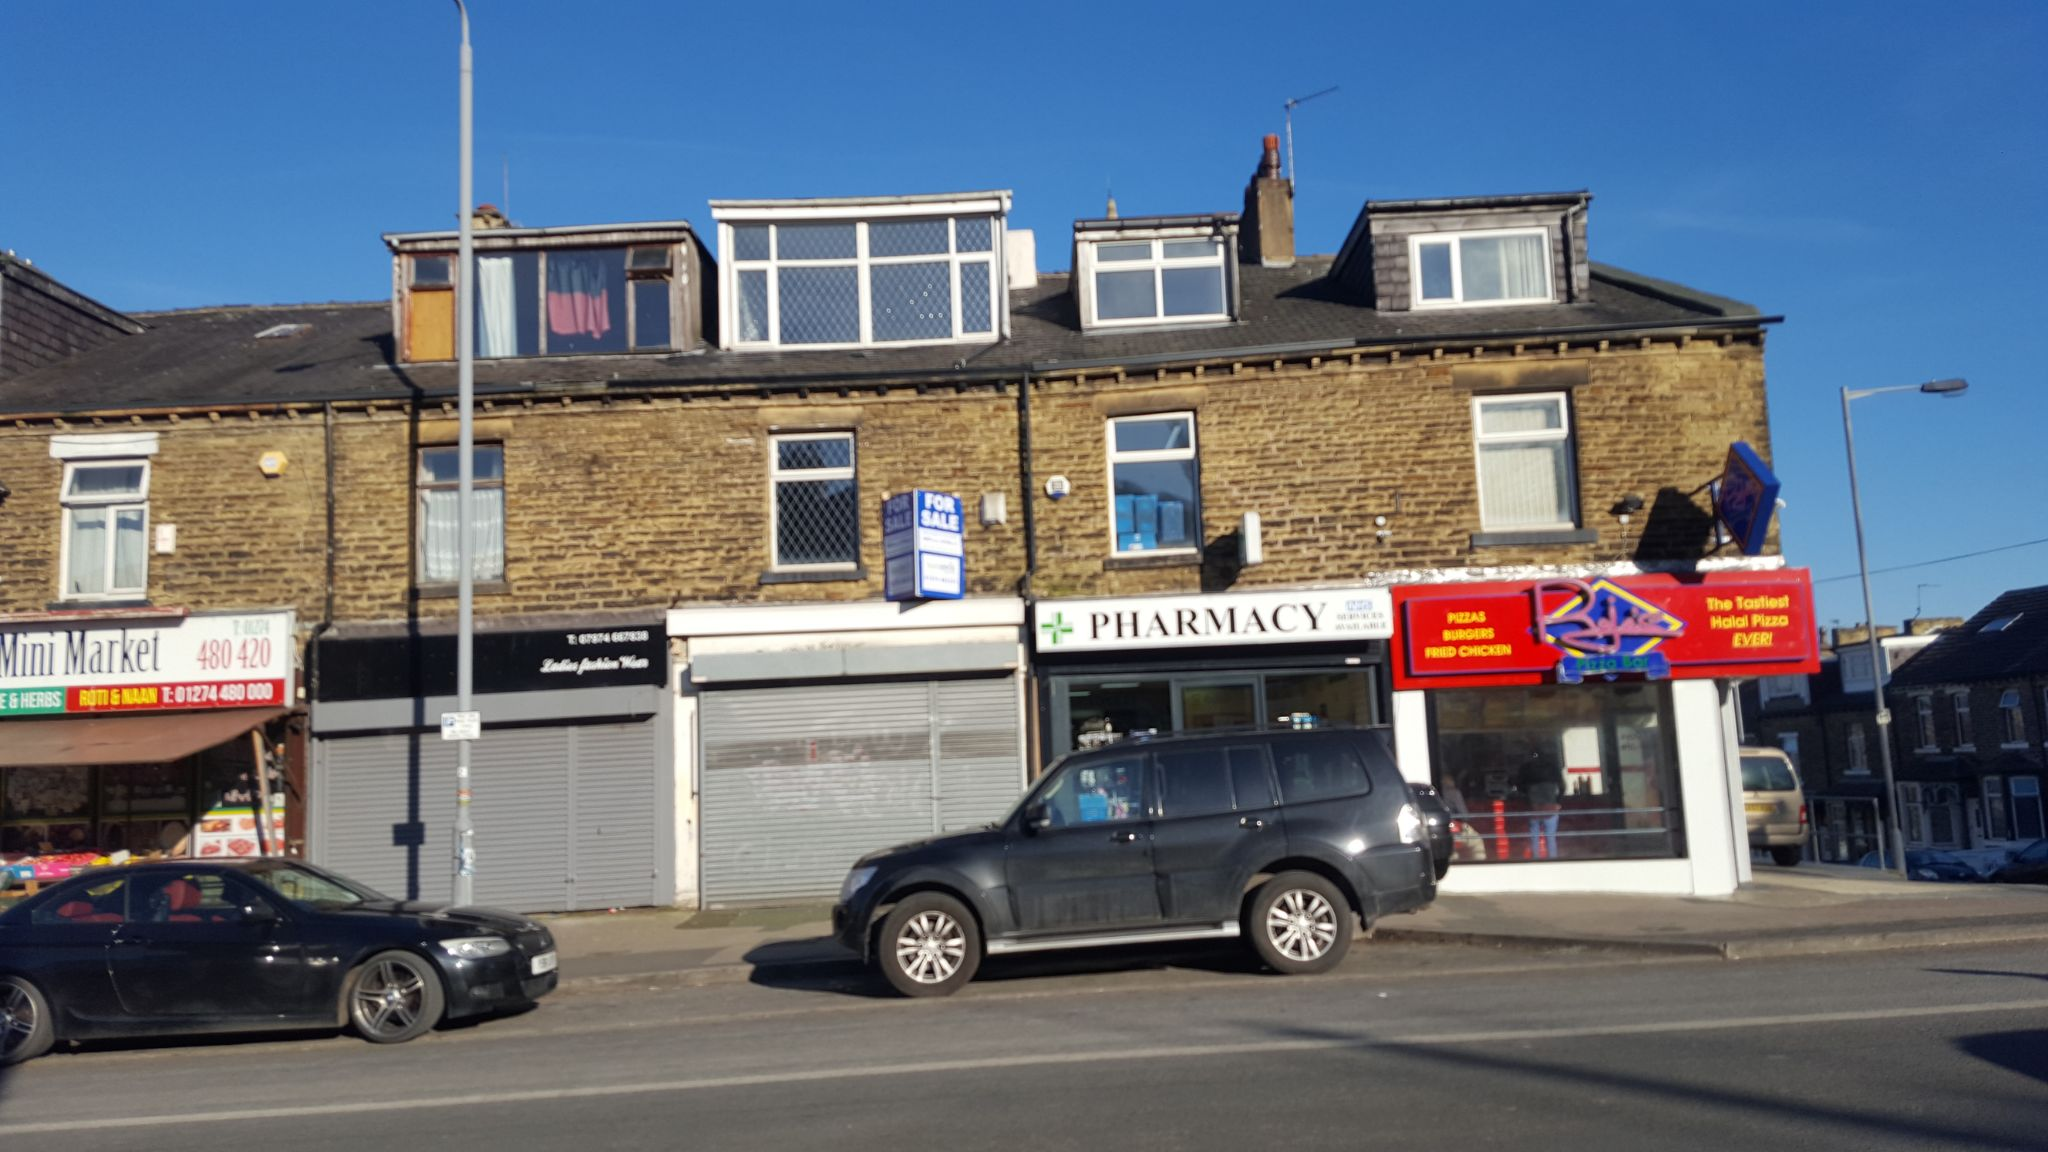 Commercial Property in Bradford - Photograph 1.